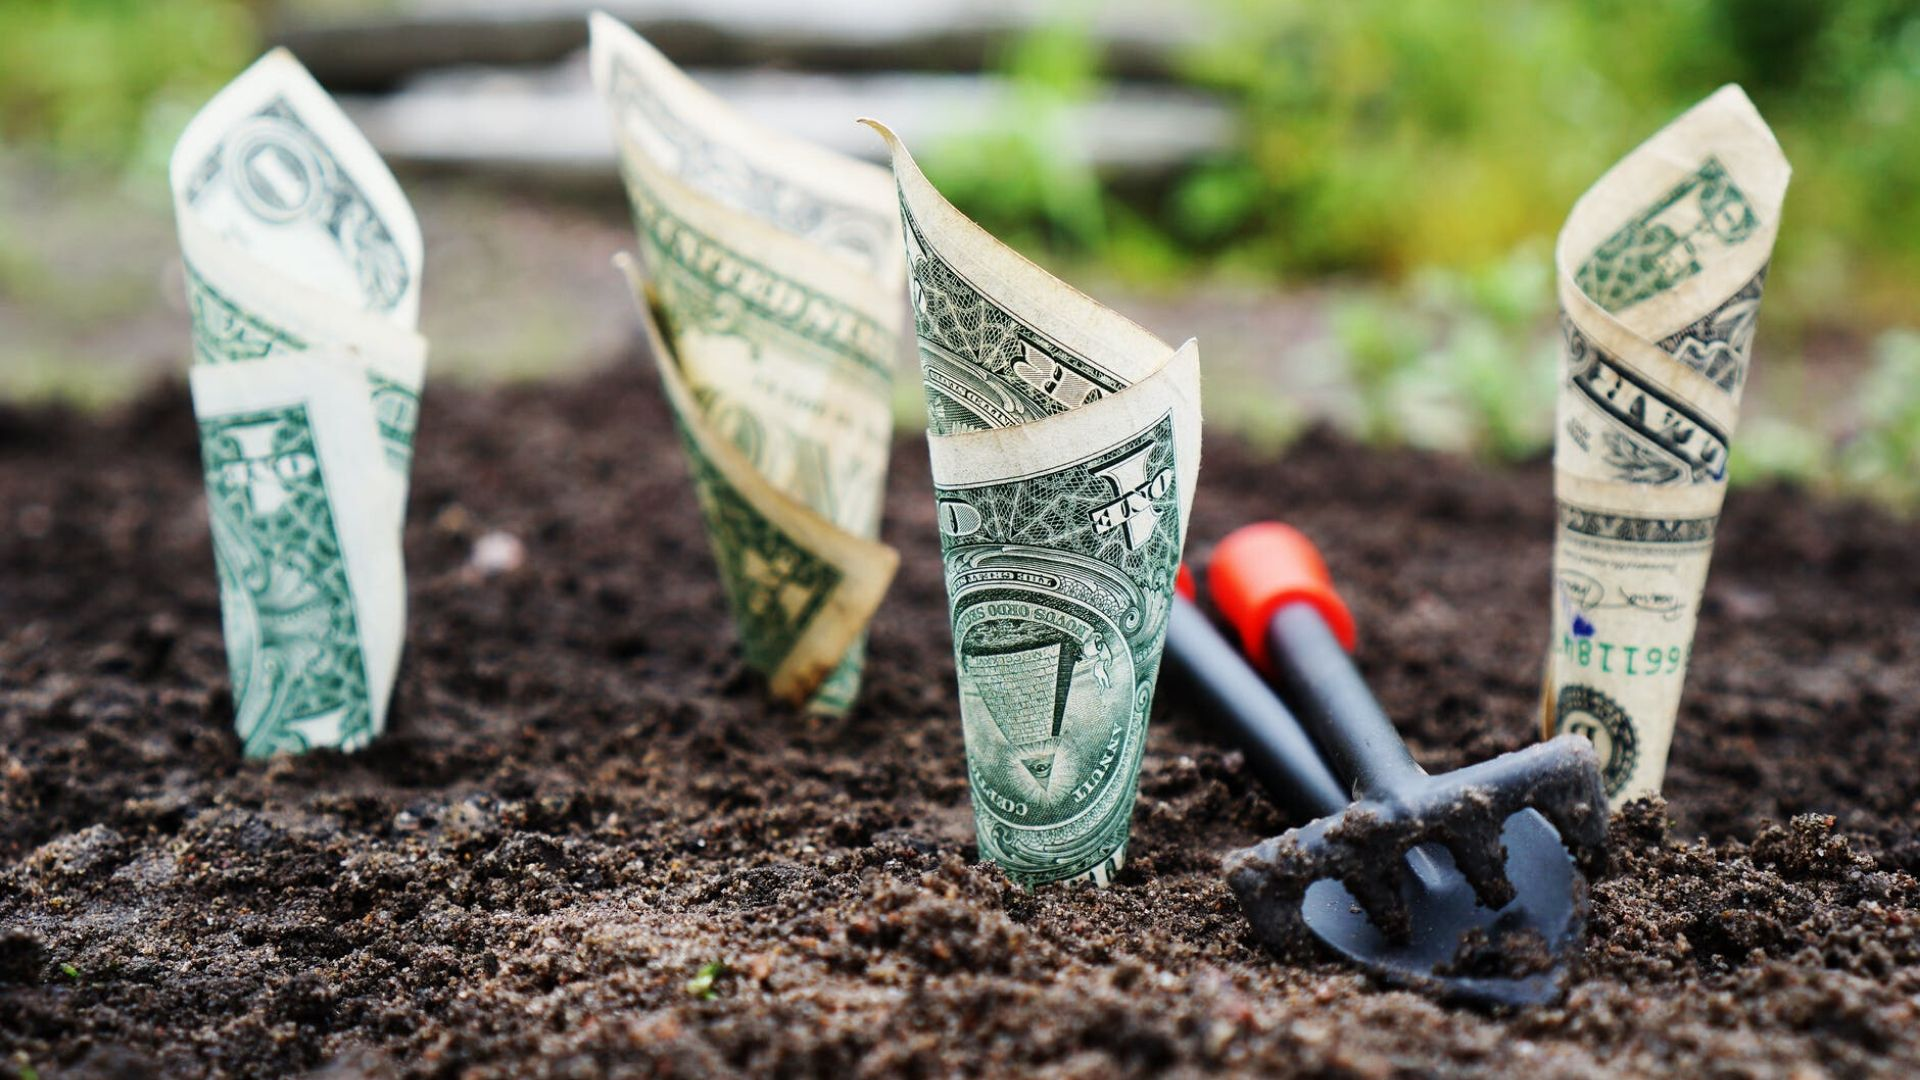 money herbs title image money growing in the ground